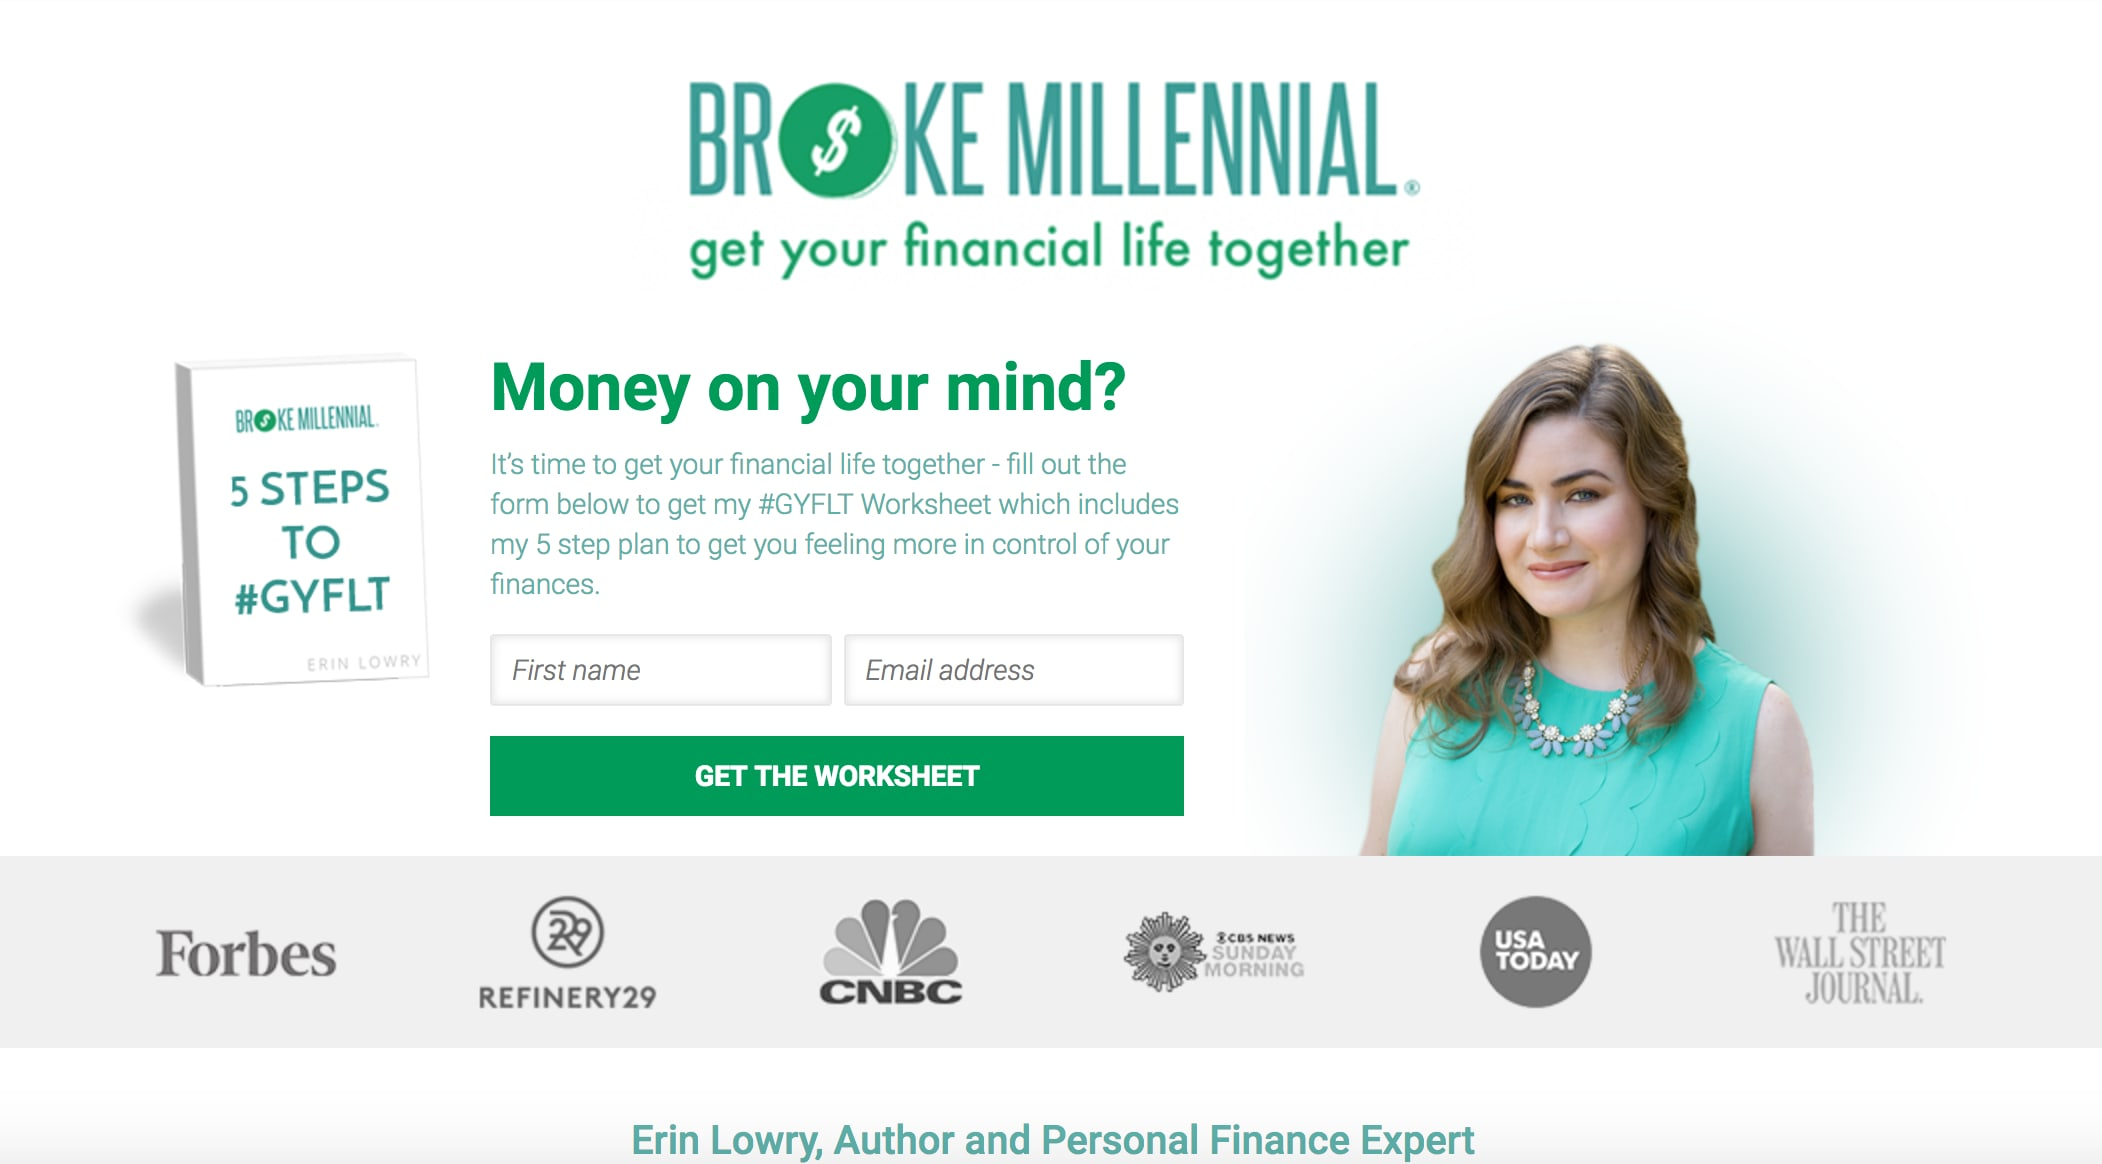 Broke Millennial, a personal finance blog by Erin Lowry